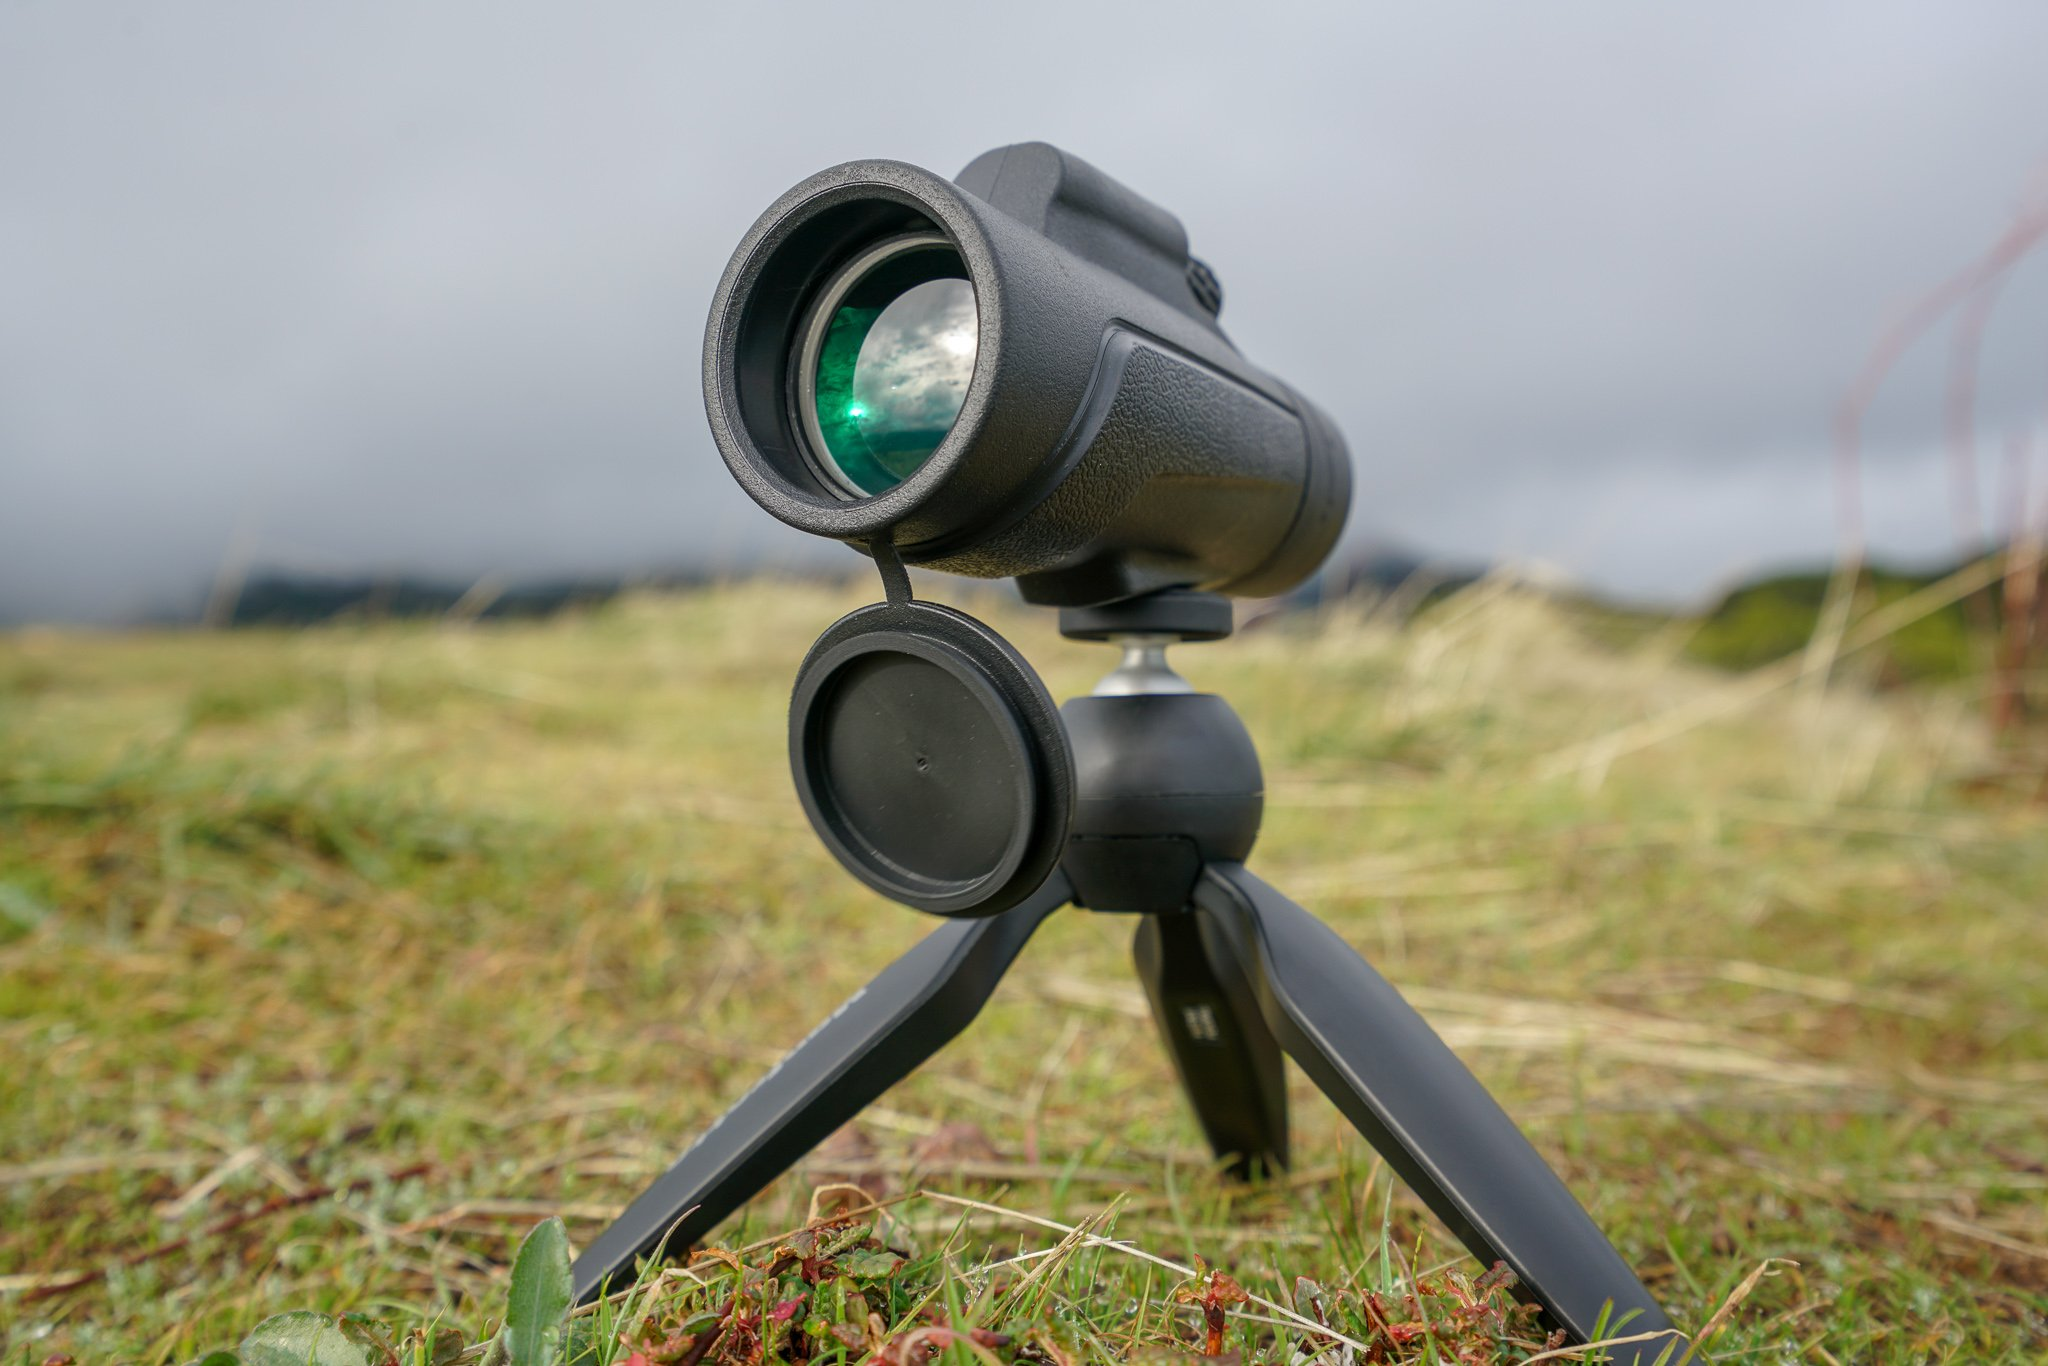 The Titan Pocket Scope Review